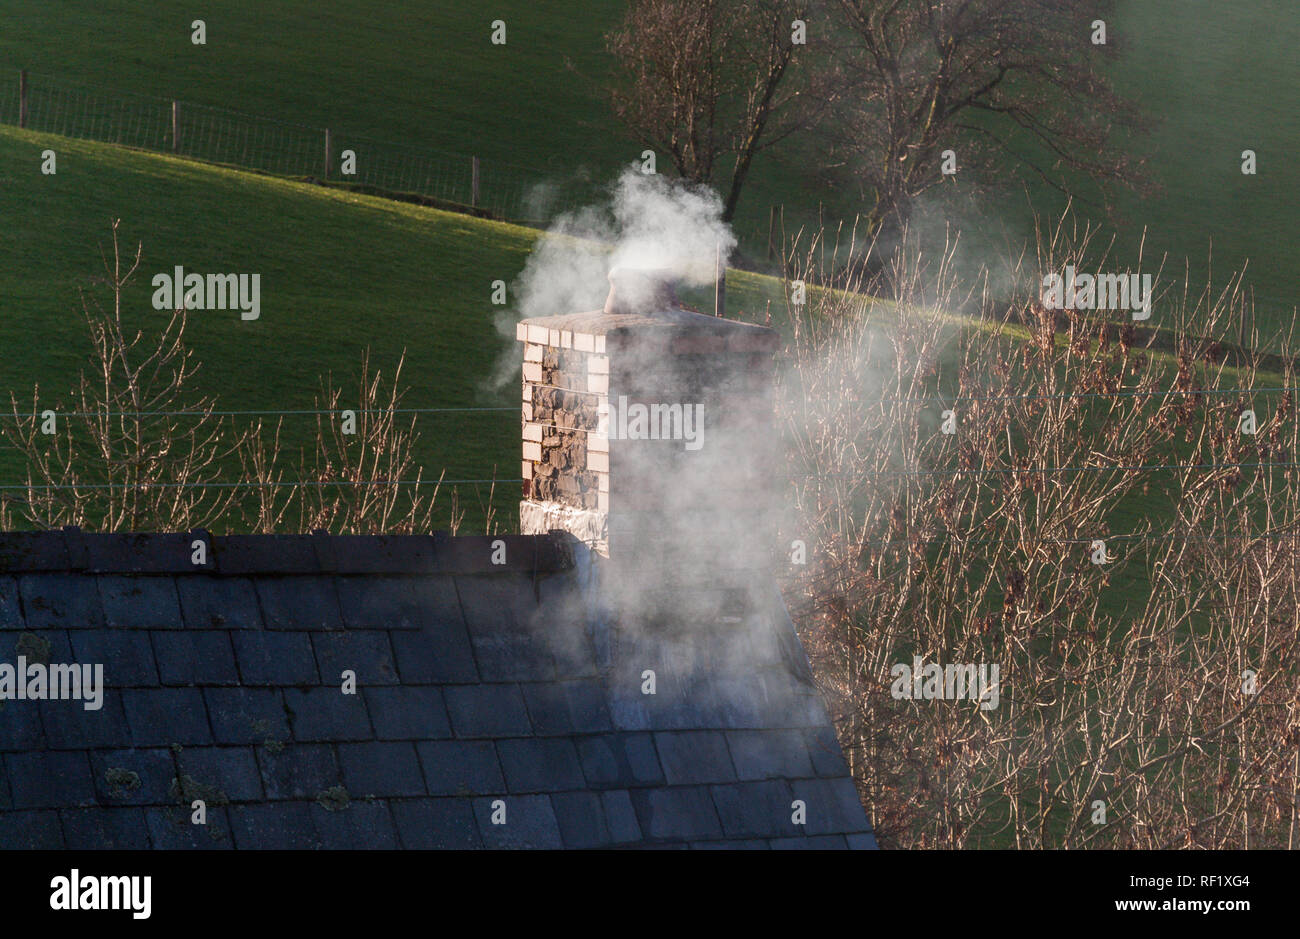 Smoke from a domestic chimney - Stock Image